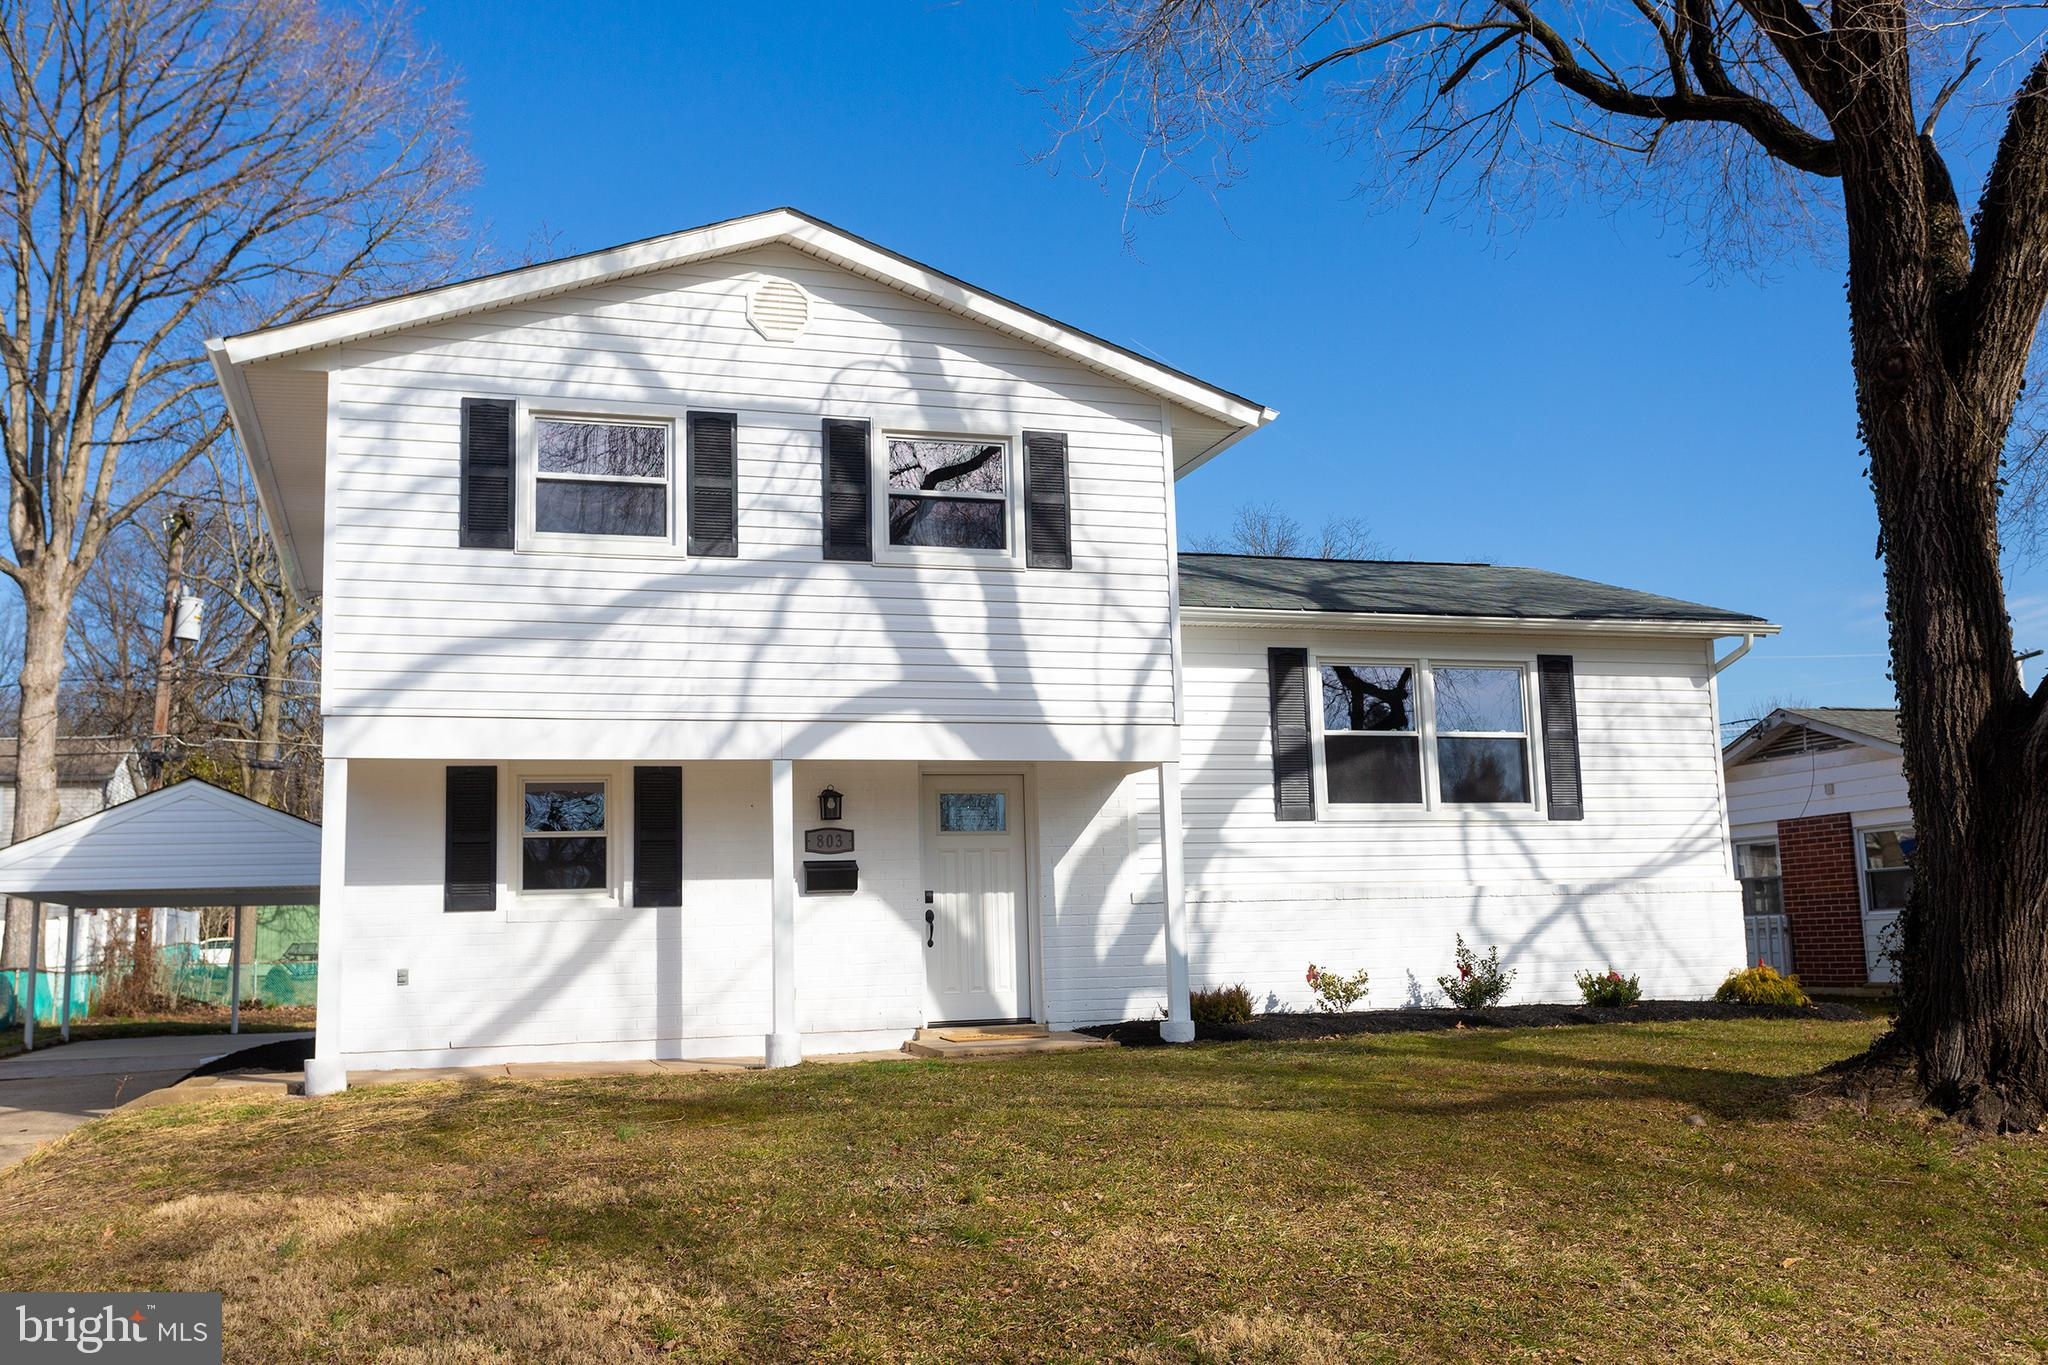 BEAUTIFUL REMODELED SPLIT LEVEL HOME WITH ALL NEW APPLIANCES, GRANITE COUNTERTOPS, AND NEW FLOORING